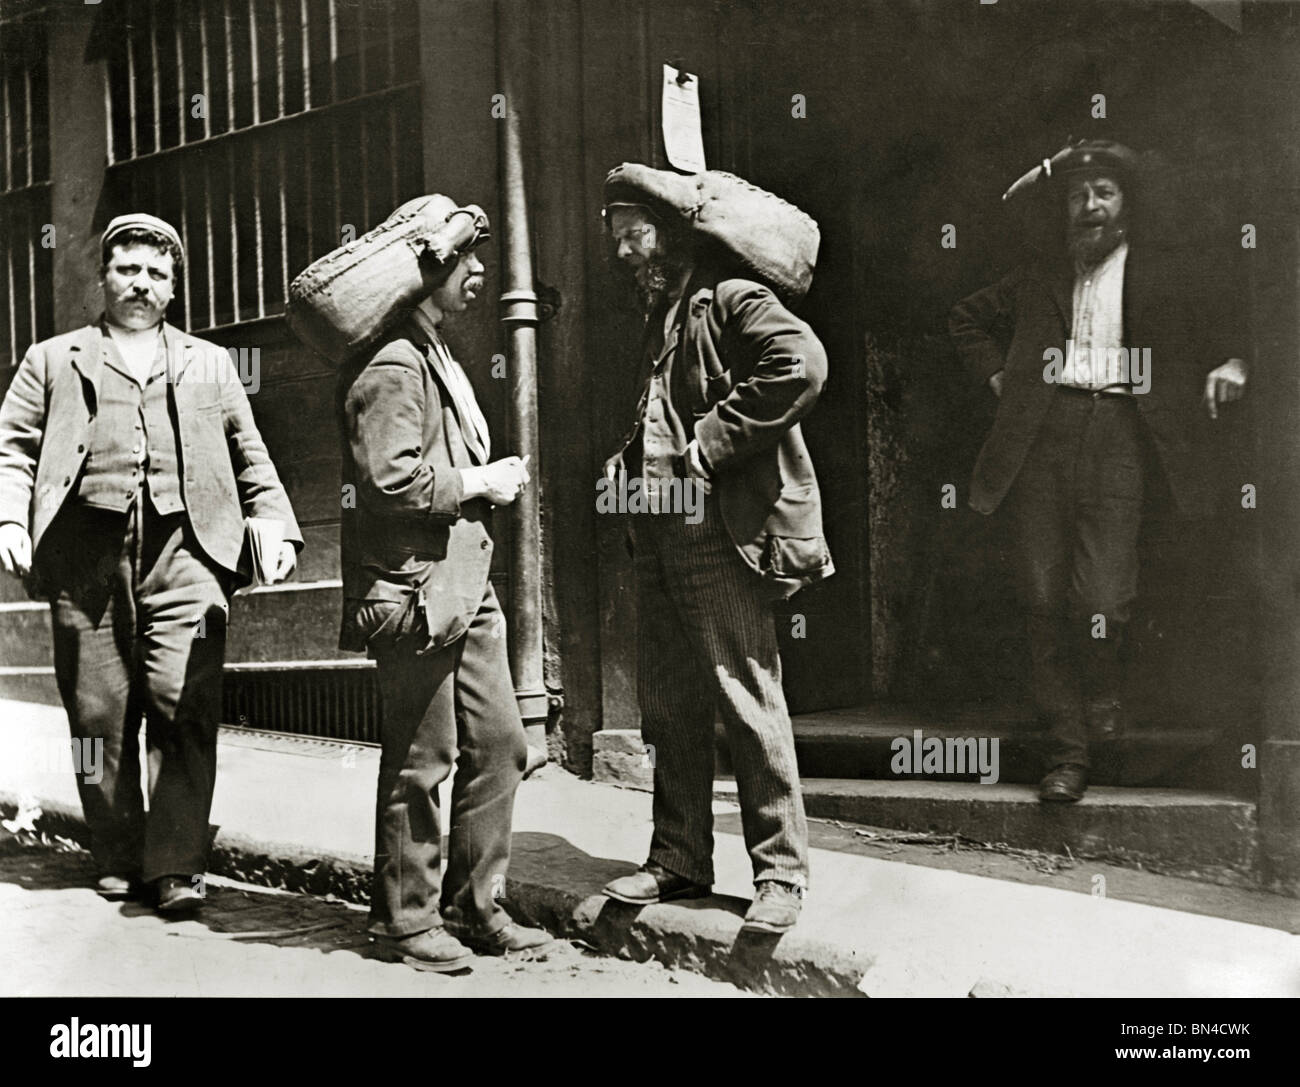 Fish Porters at Billingsgate Market, photo Paul Martin. England, late 19th century - Stock Image